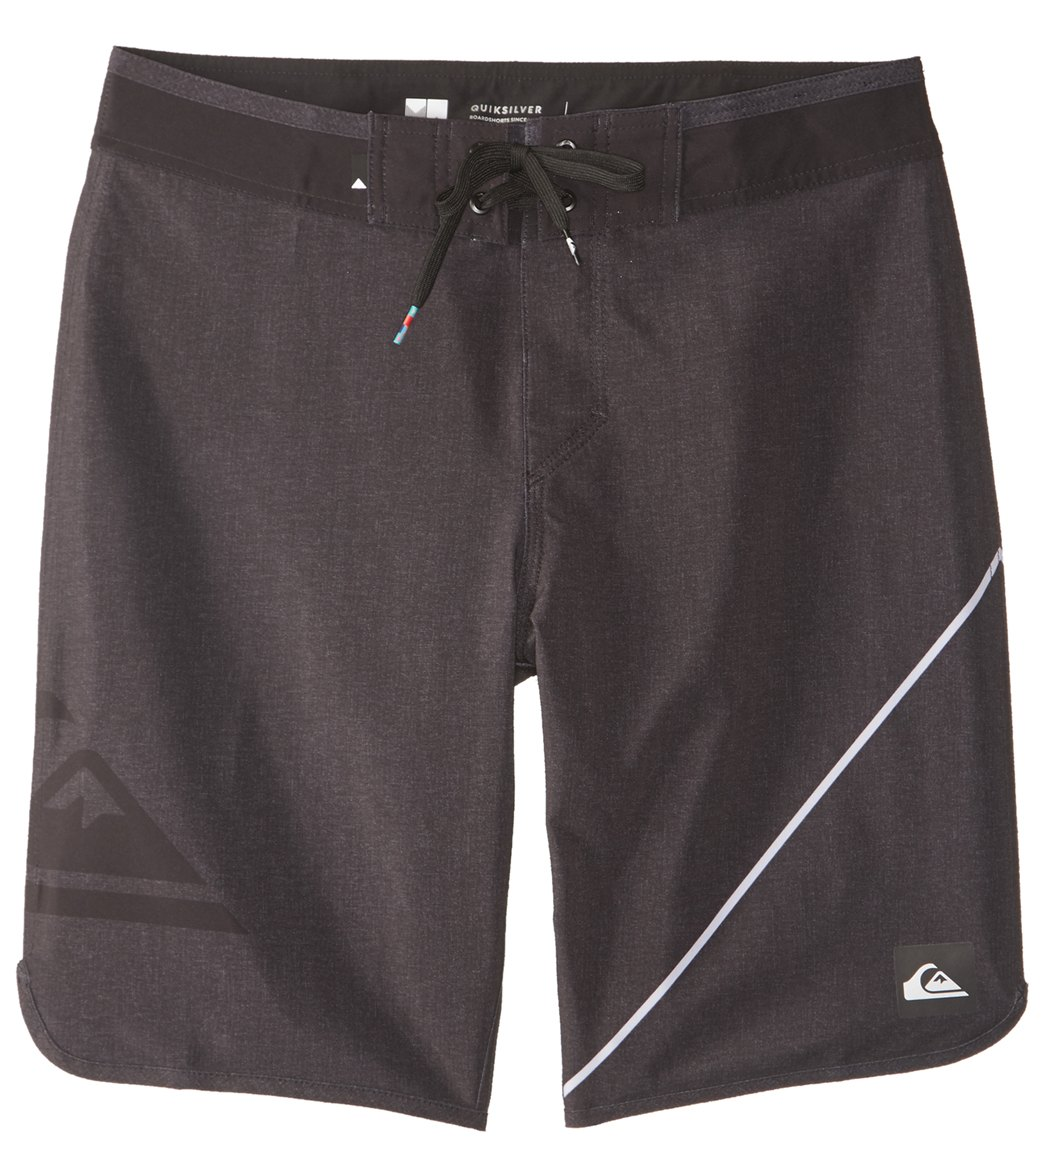 14cb4d3ea5 Quiksilver Men's New Wave Everyday Boardshort at SwimOutlet.com - Free  Shipping